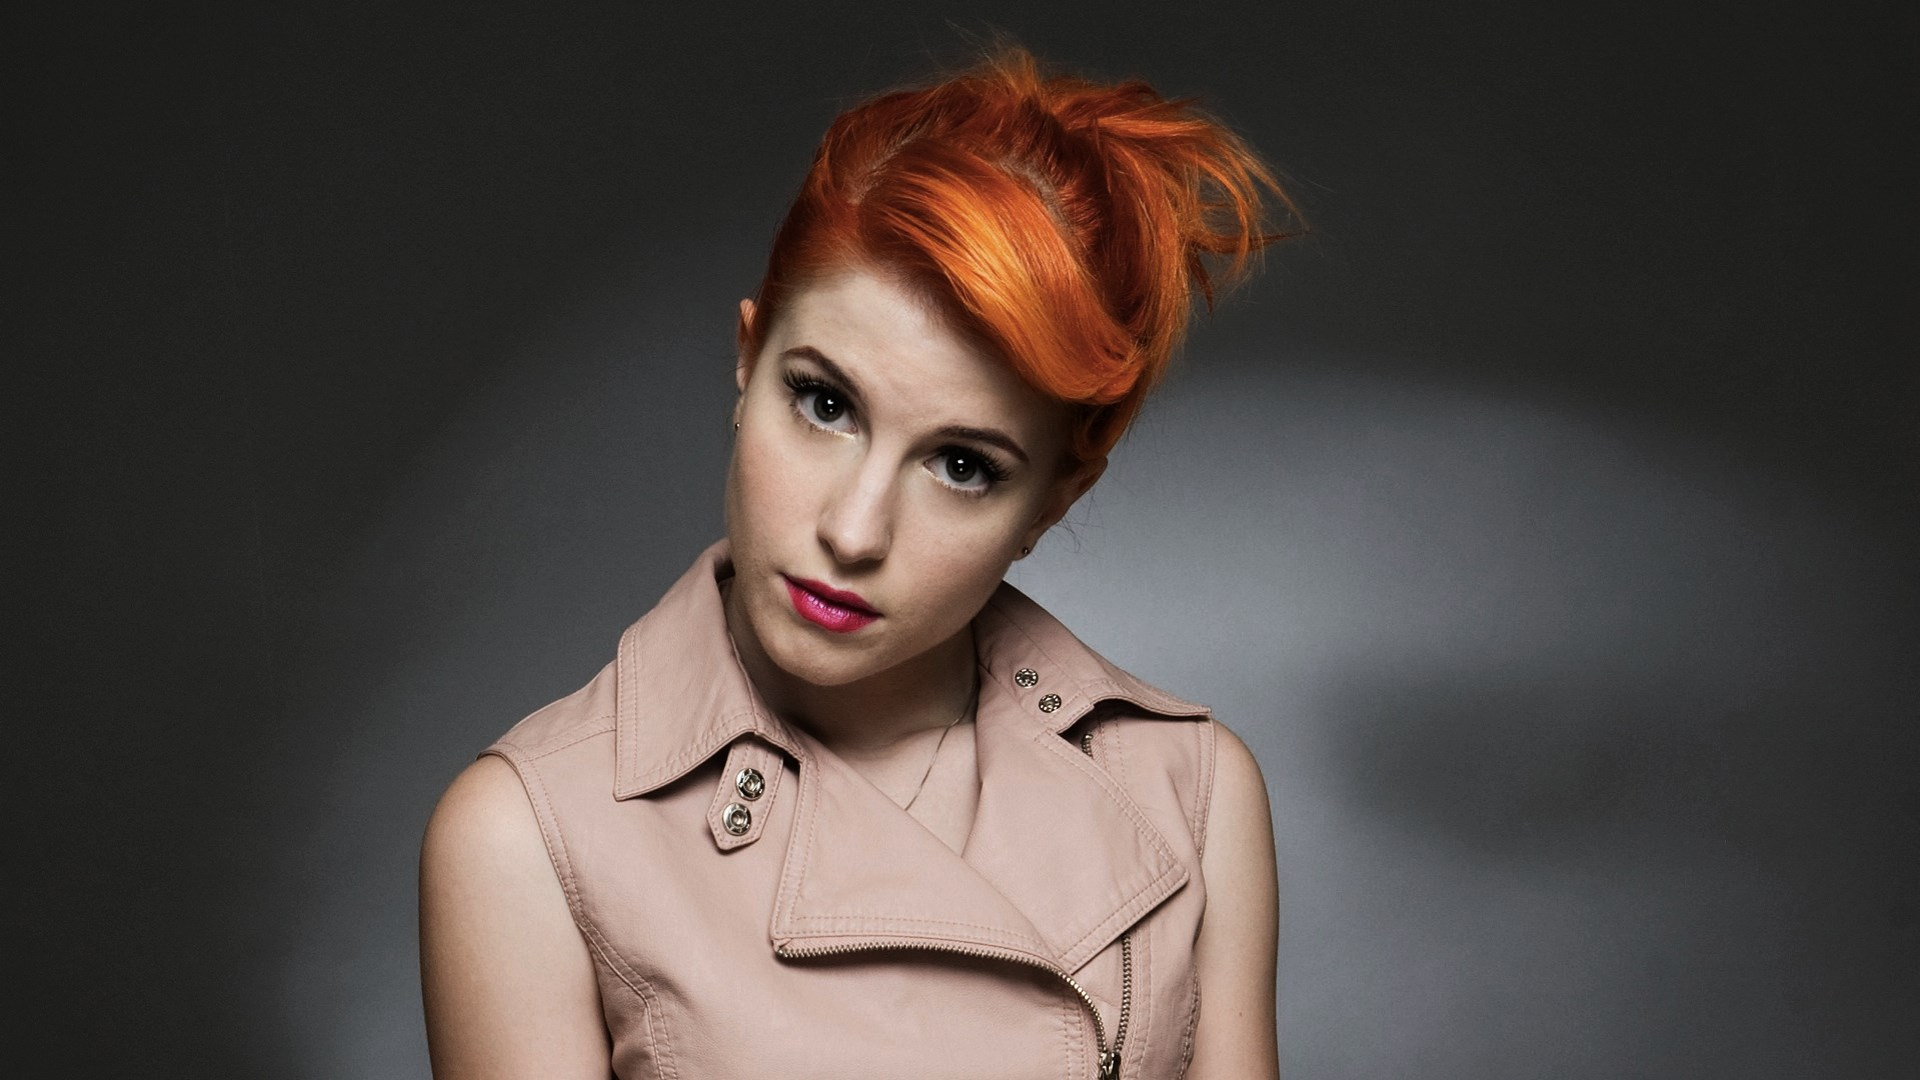 Hayley Williams HD wallpapers amp background download 1920x1080